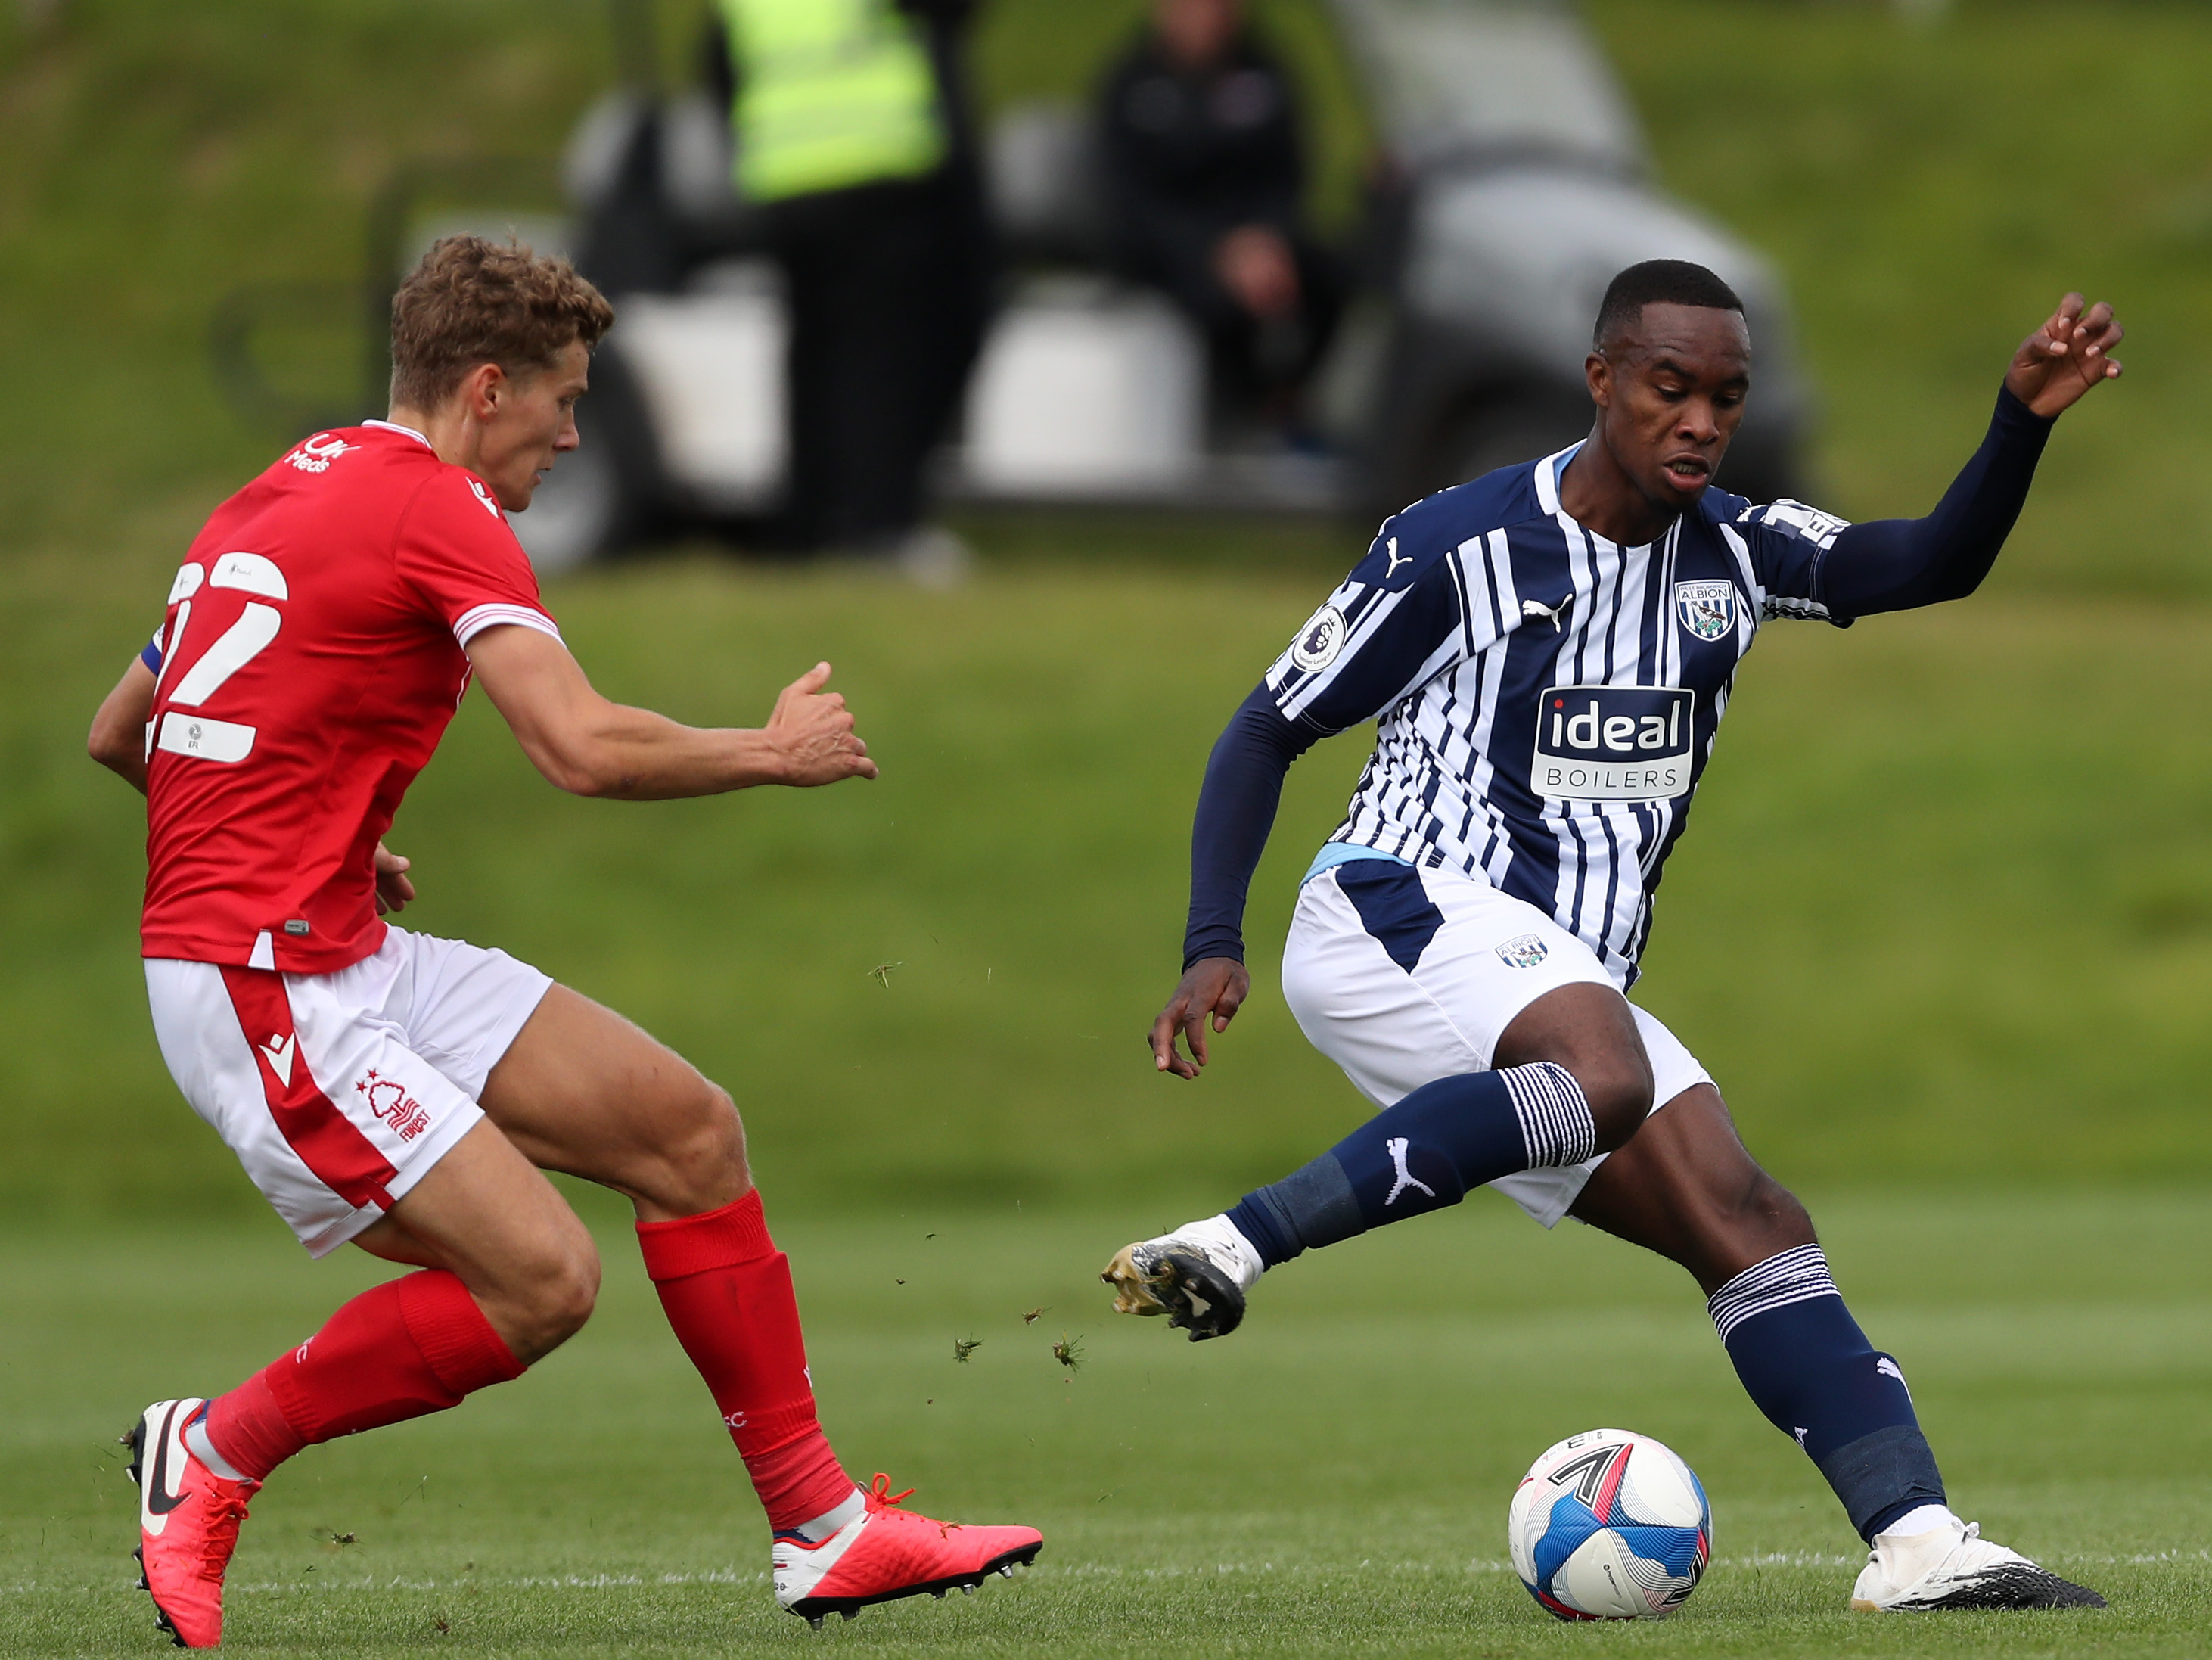 Albion begin their pre-season schedule with a valuable work-out against Forest